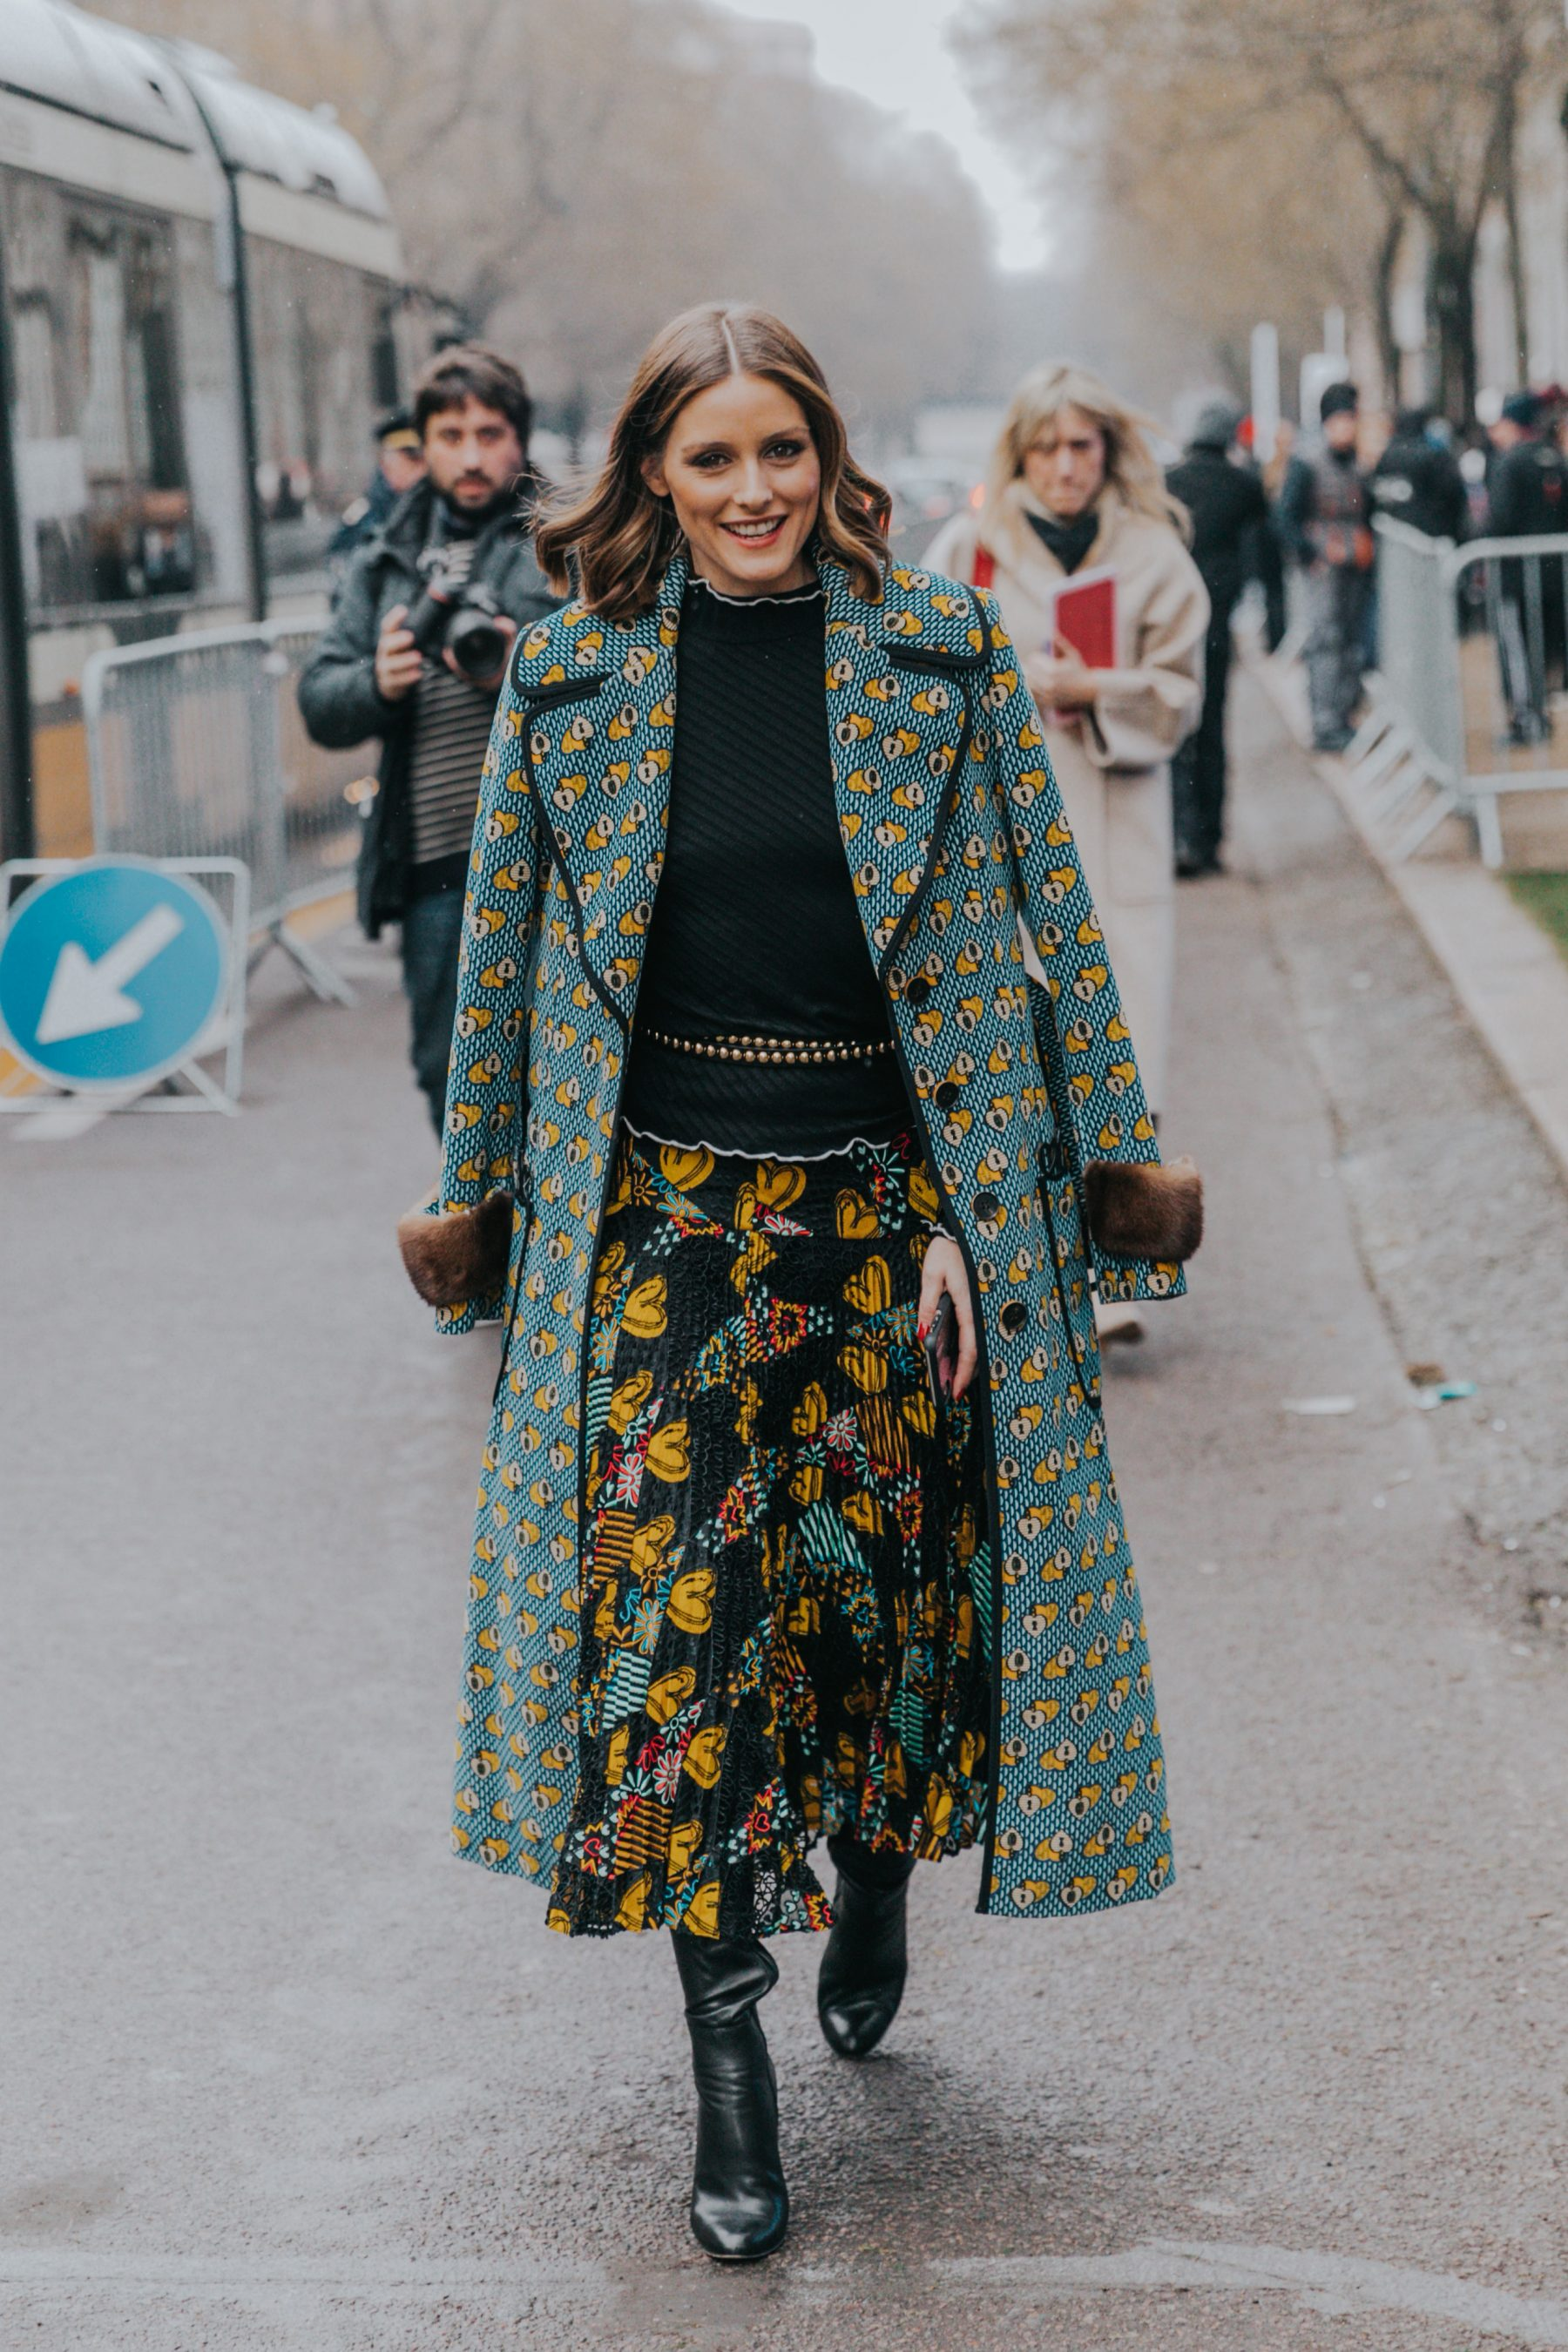 Fall Street Style Fashion For Women 2019: MILAN FALL 18/19 STREET STYLE II